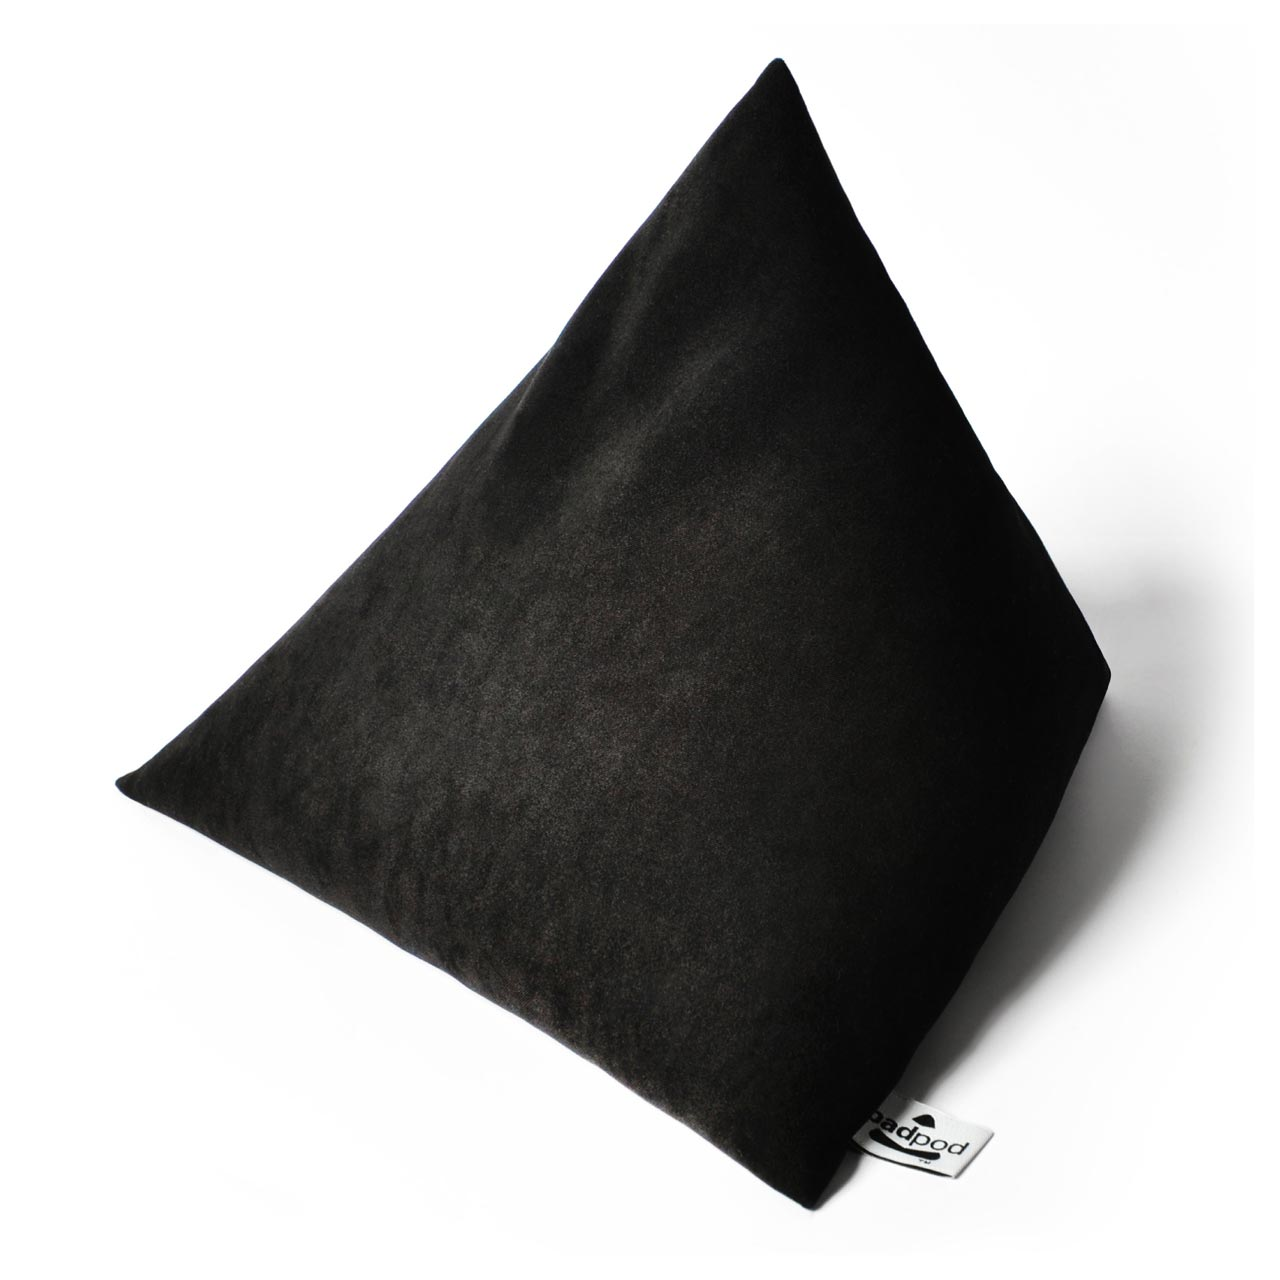 PADPOD iPad / tablet cushion black | The Design Gift Shop